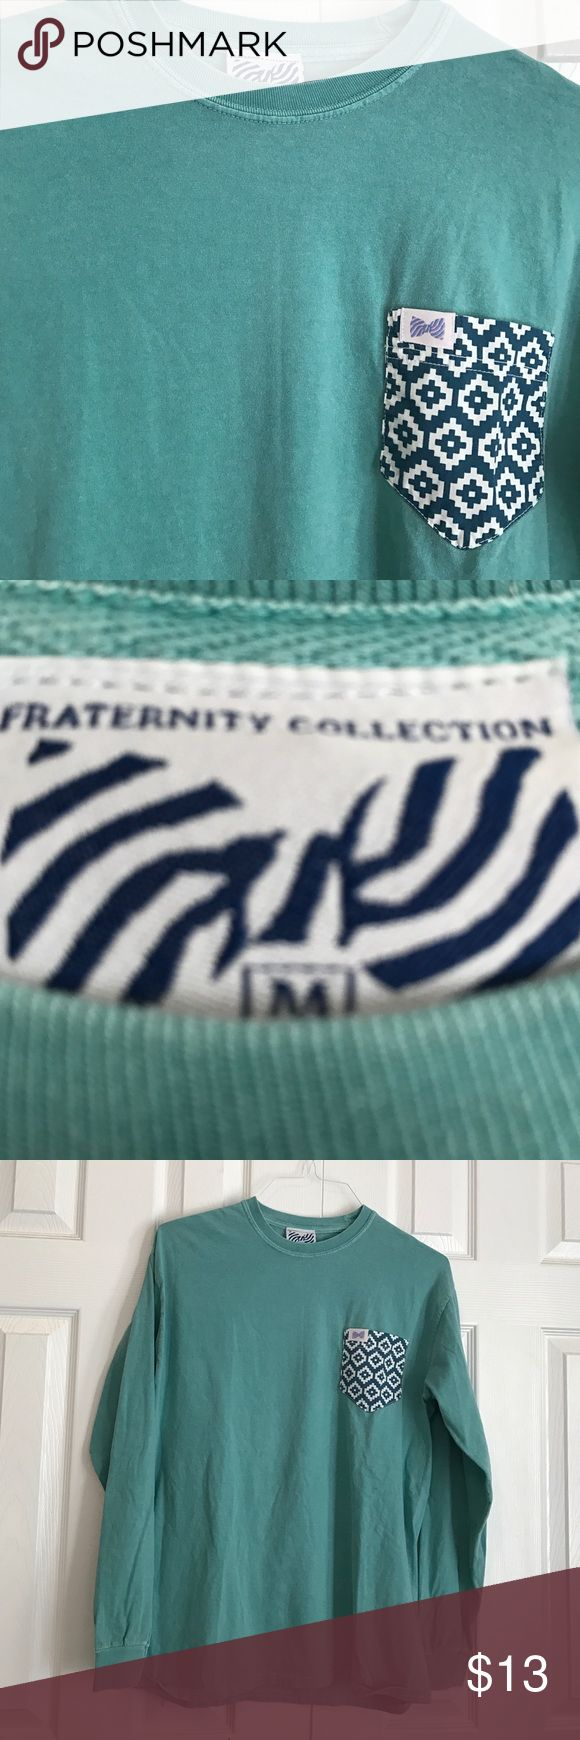 Fraternity Collection washed out green pocket tee Size medium. Long sleeve green tee shirt with pattern pocket fraternity collection Tops Tees - Long Sleeve